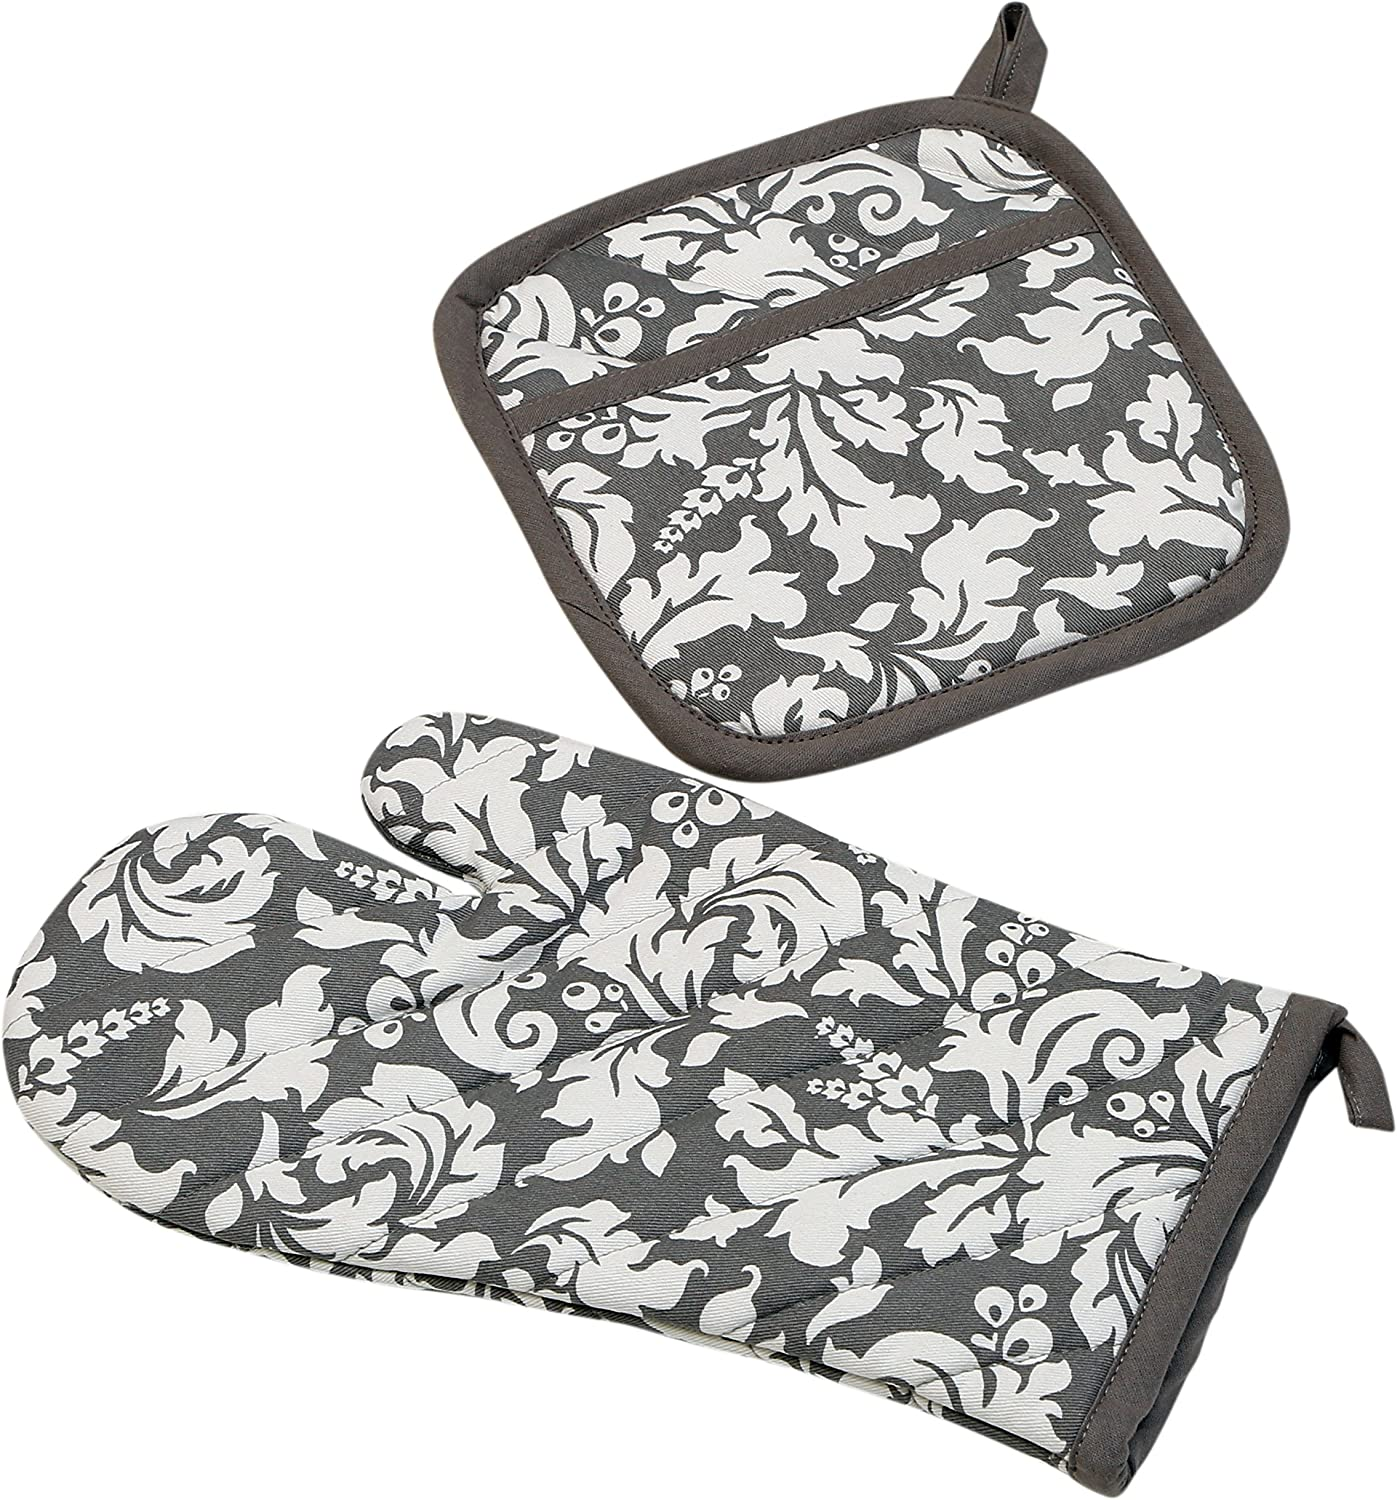 Yourtablecloth Set of Oven Mitt and Pot Holder or Oven Gloves – 100% Cotton, High Heat Resistance, Superior Protection & Comfort – Elegant Design – Machine Washable-Gray